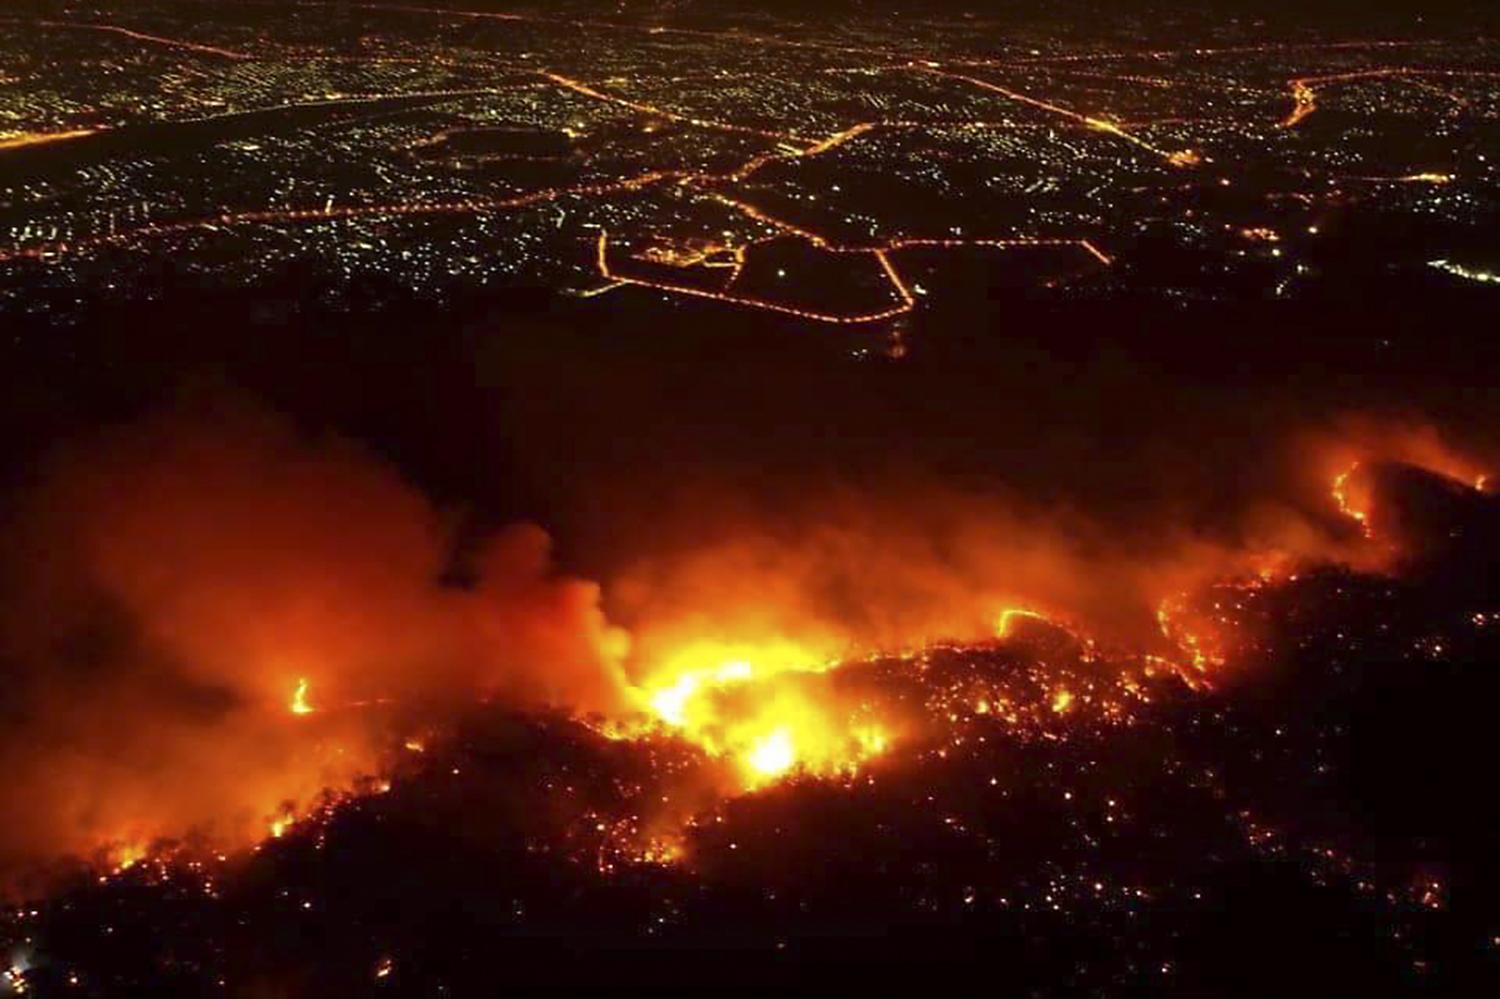 A bushfire ravages Doi Suthep-Pui National Park in Chiang Mai's Hang Dong district on the night of March 25. (Chiang Mai Volunteer Drone Team)